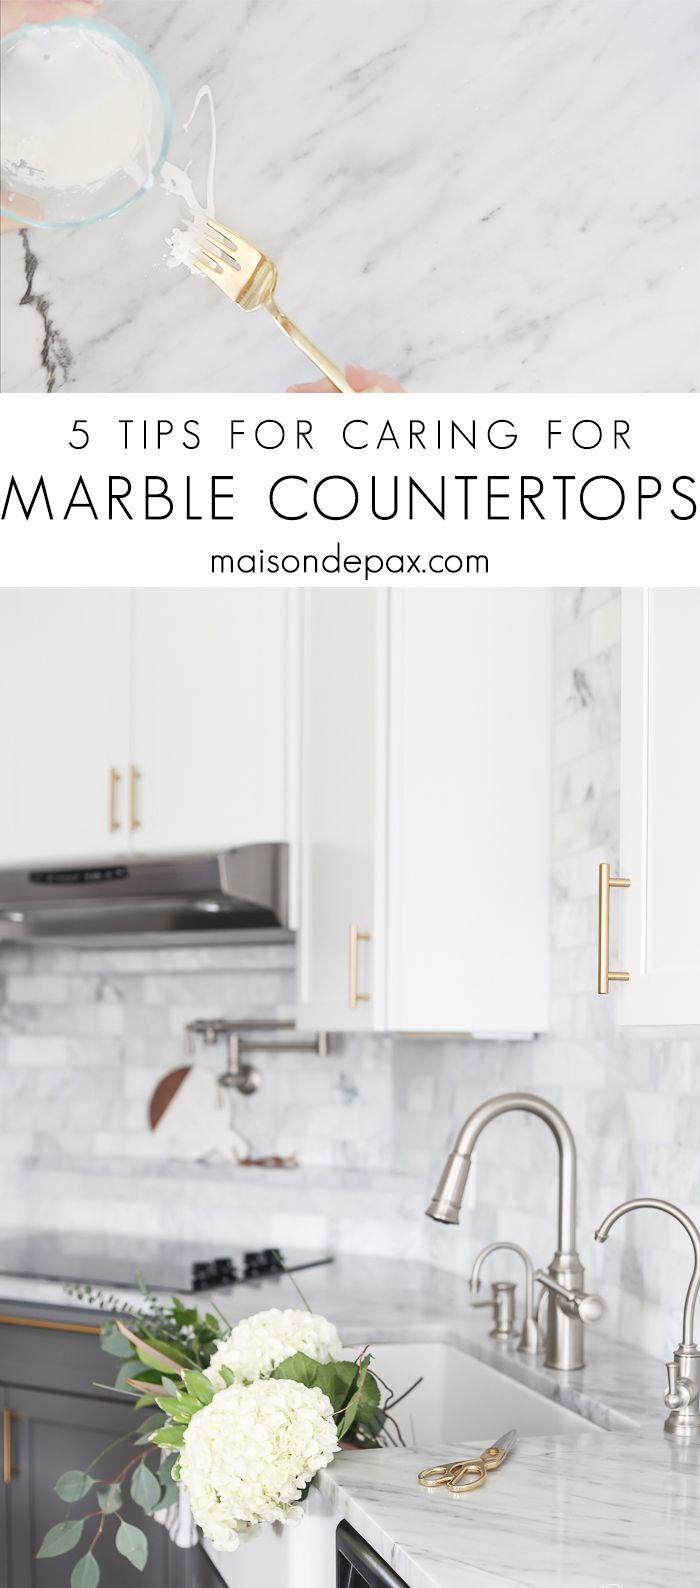 947 best kitchen images on pinterest kitchen remodeling updated 5 tips for caring for marble counters wondering how to care for marble counters dailygadgetfo Image collections